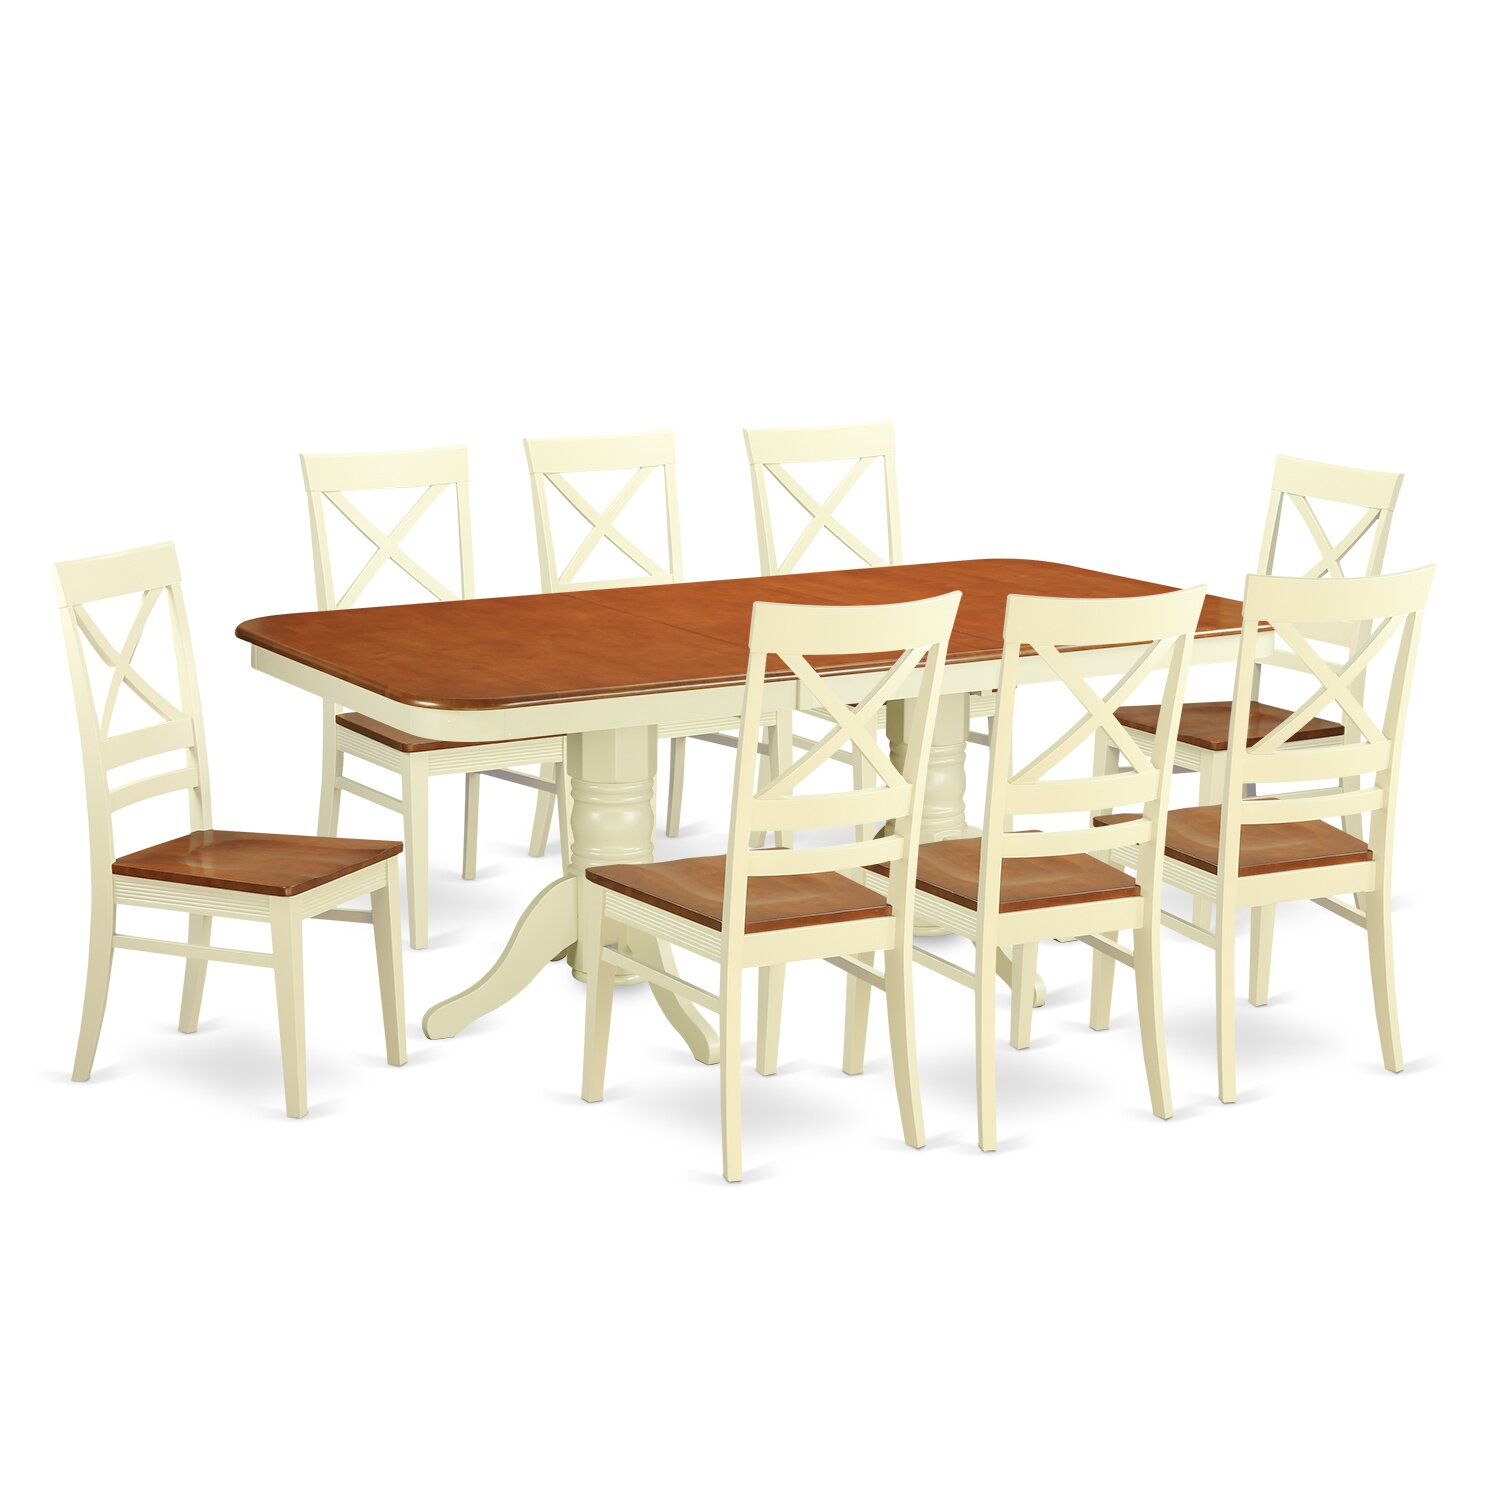 Wooden importers napoleon 9 piece dining set wayfair for Dining room tables 9 piece